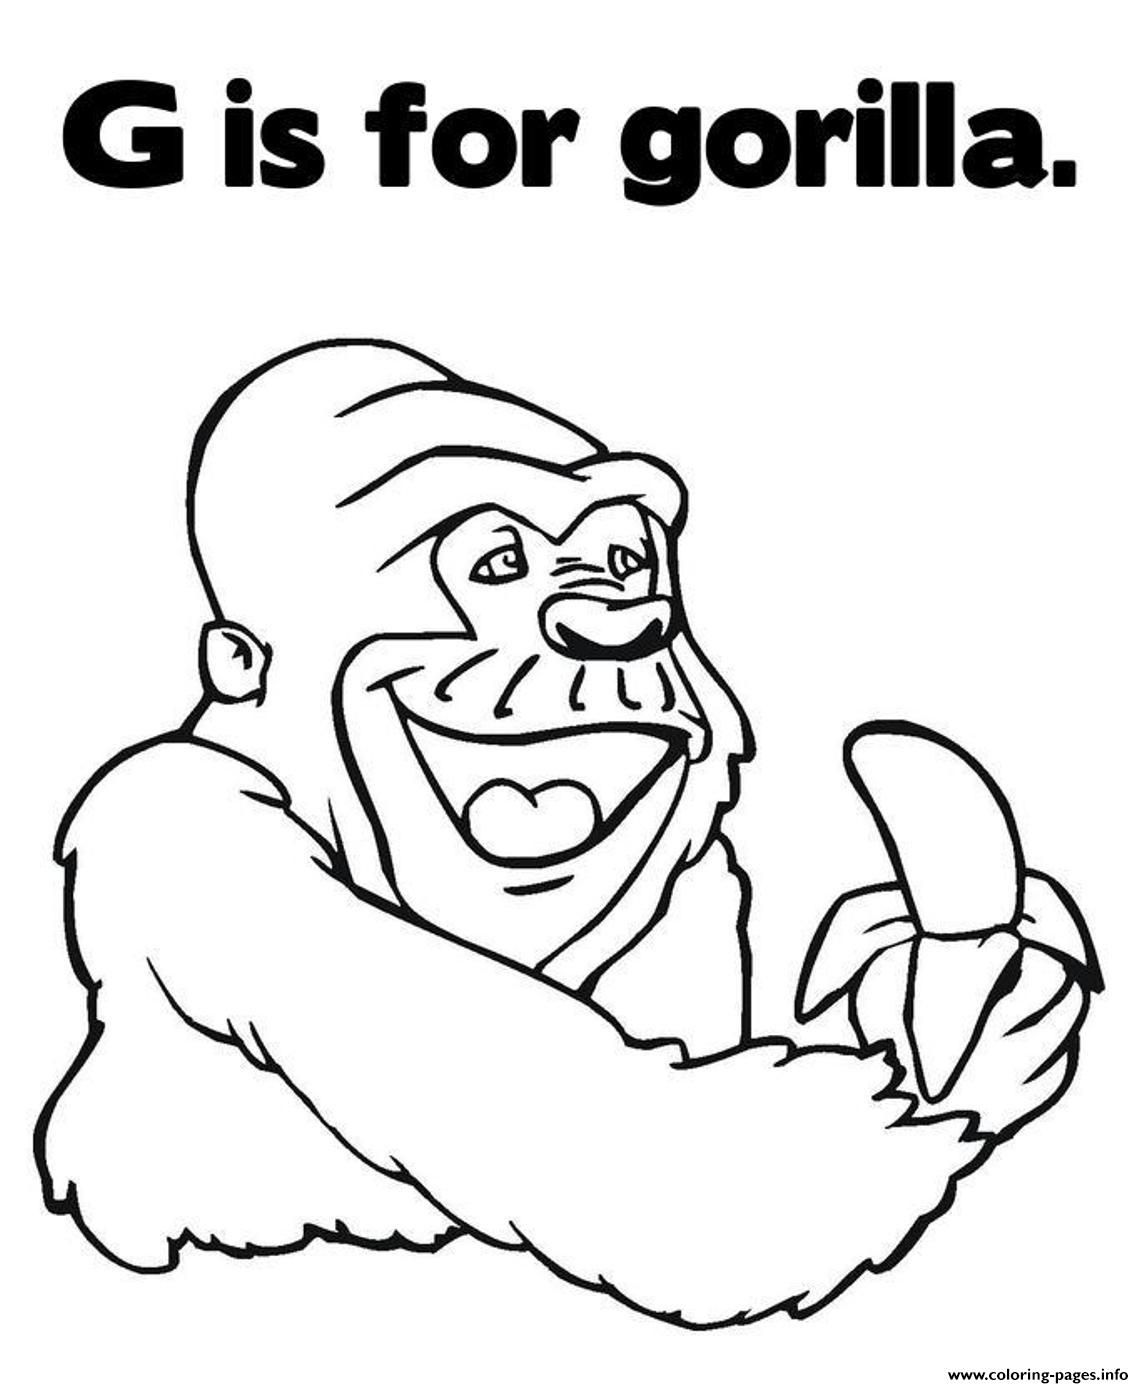 gorilla-coloring-page-0008-q1